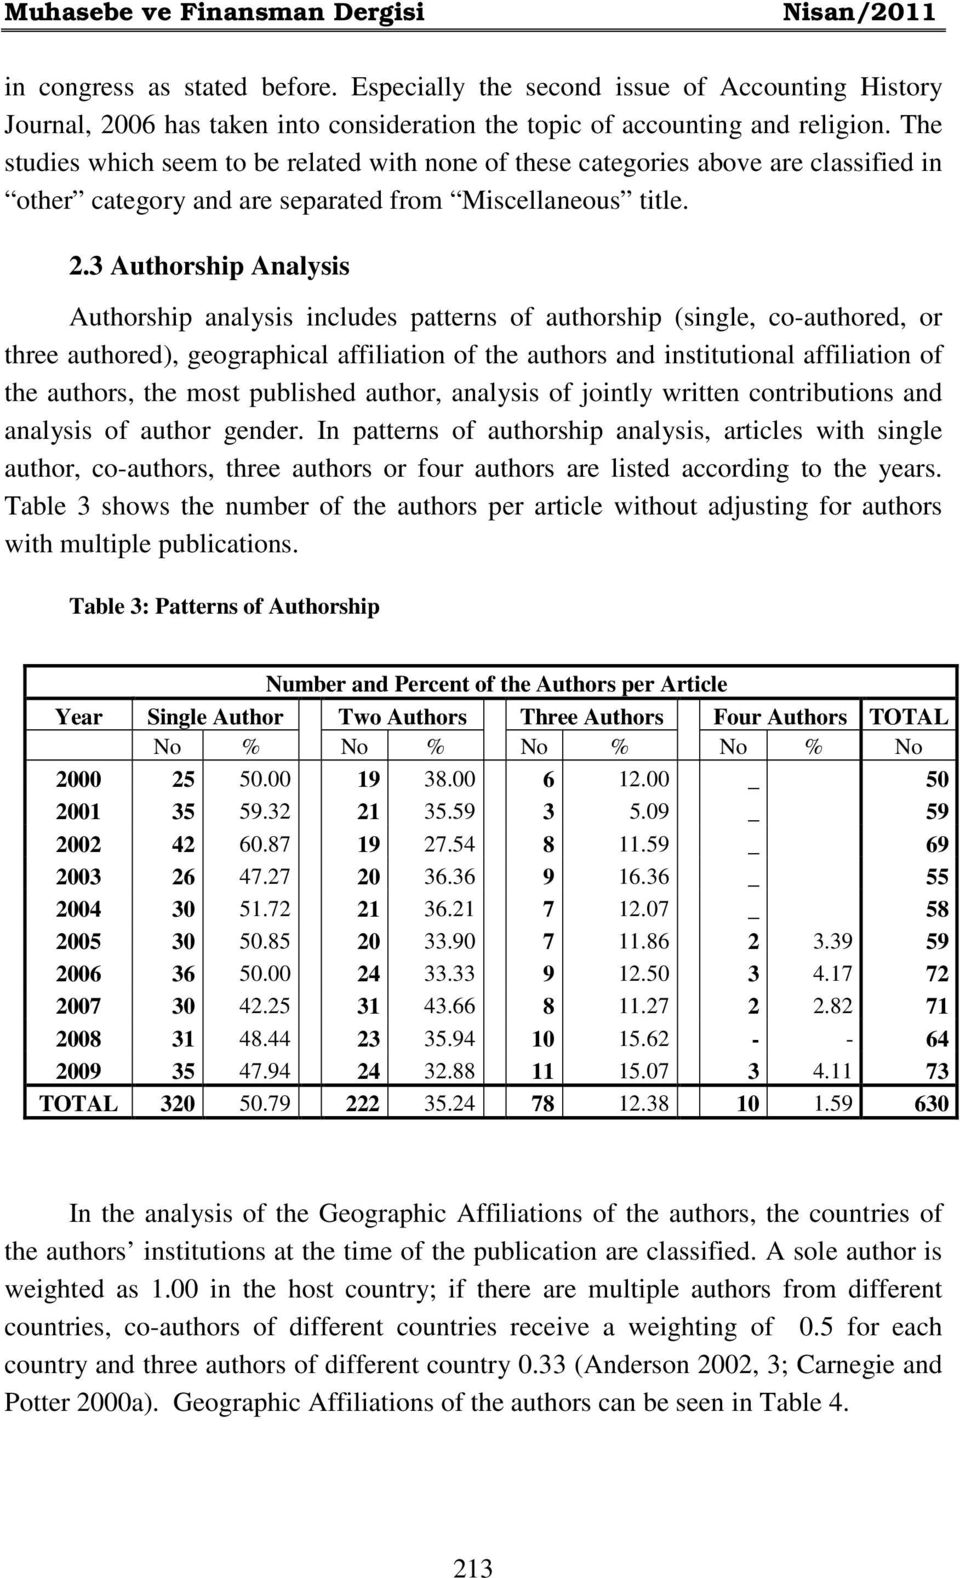 .3 Authorship Analysis Authorship analysis includes patterns of authorship (single, co-authored, or three authored), geographical affiliation of the authors and institutional affiliation of the